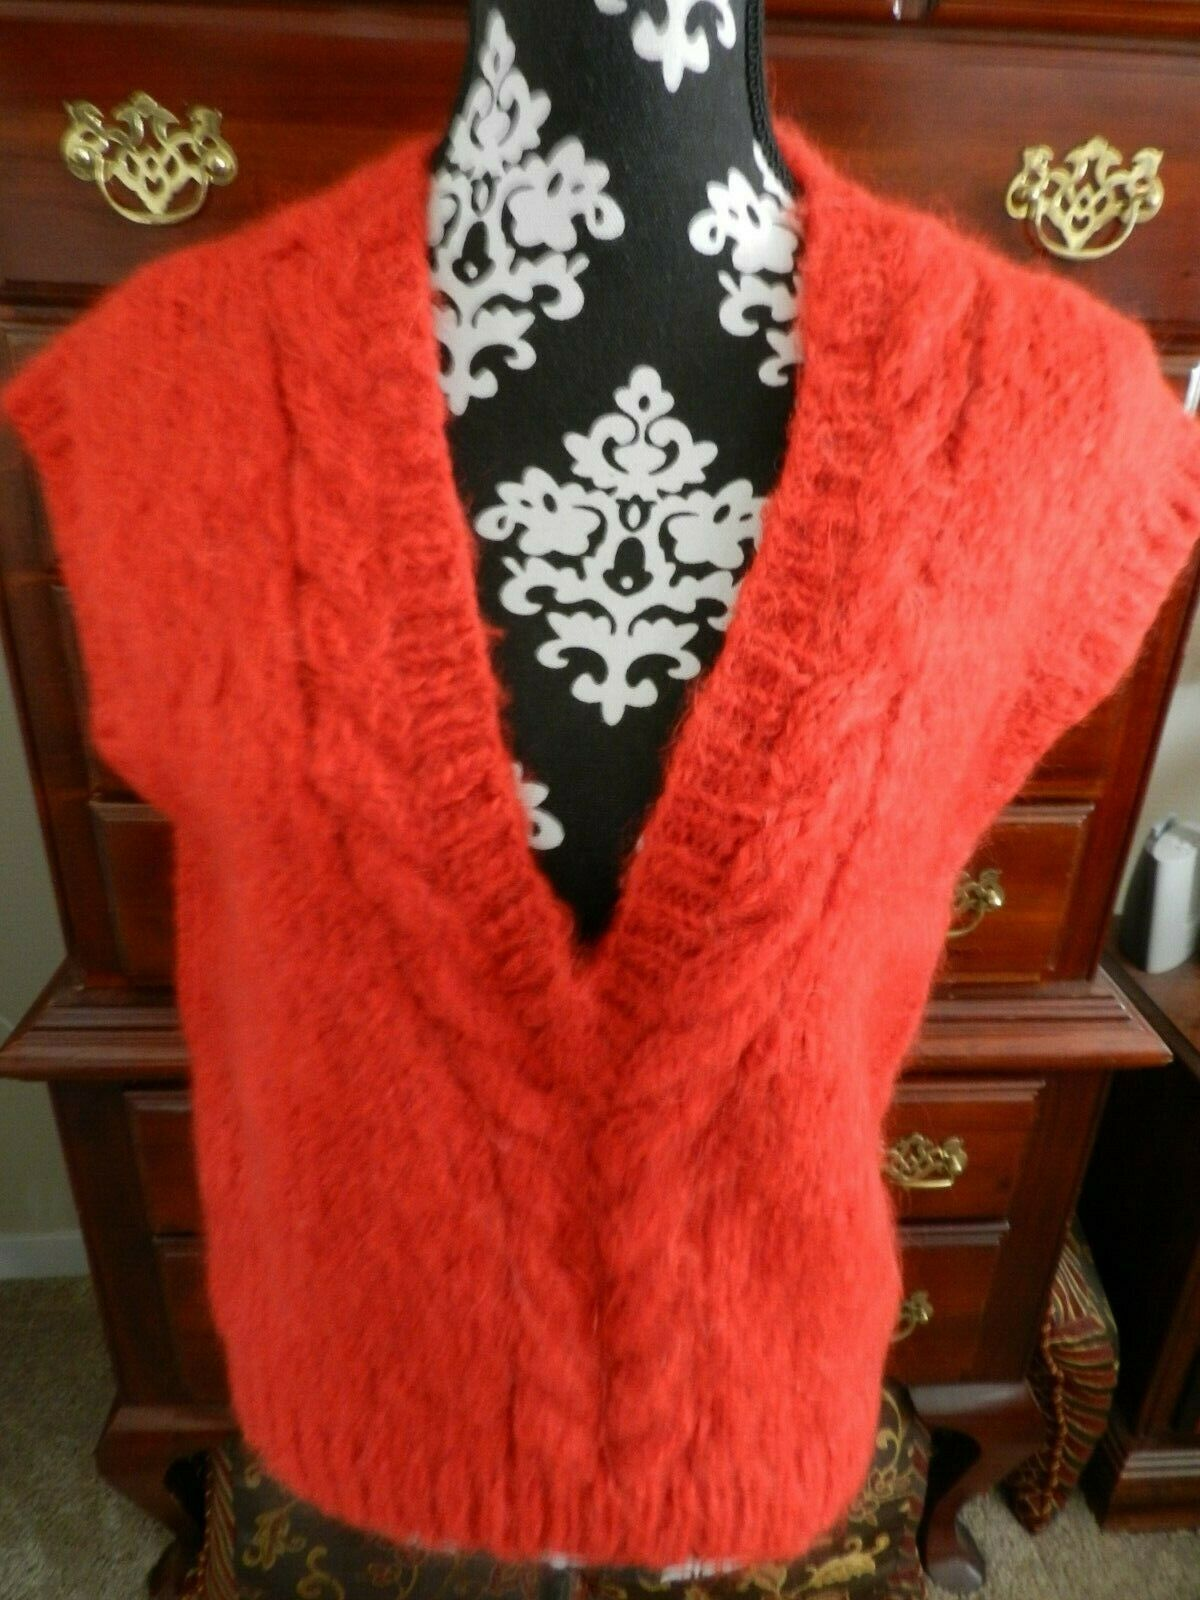 100% Wool Hand Knit Sweater-Vest Red Quality From Grandma's Estate